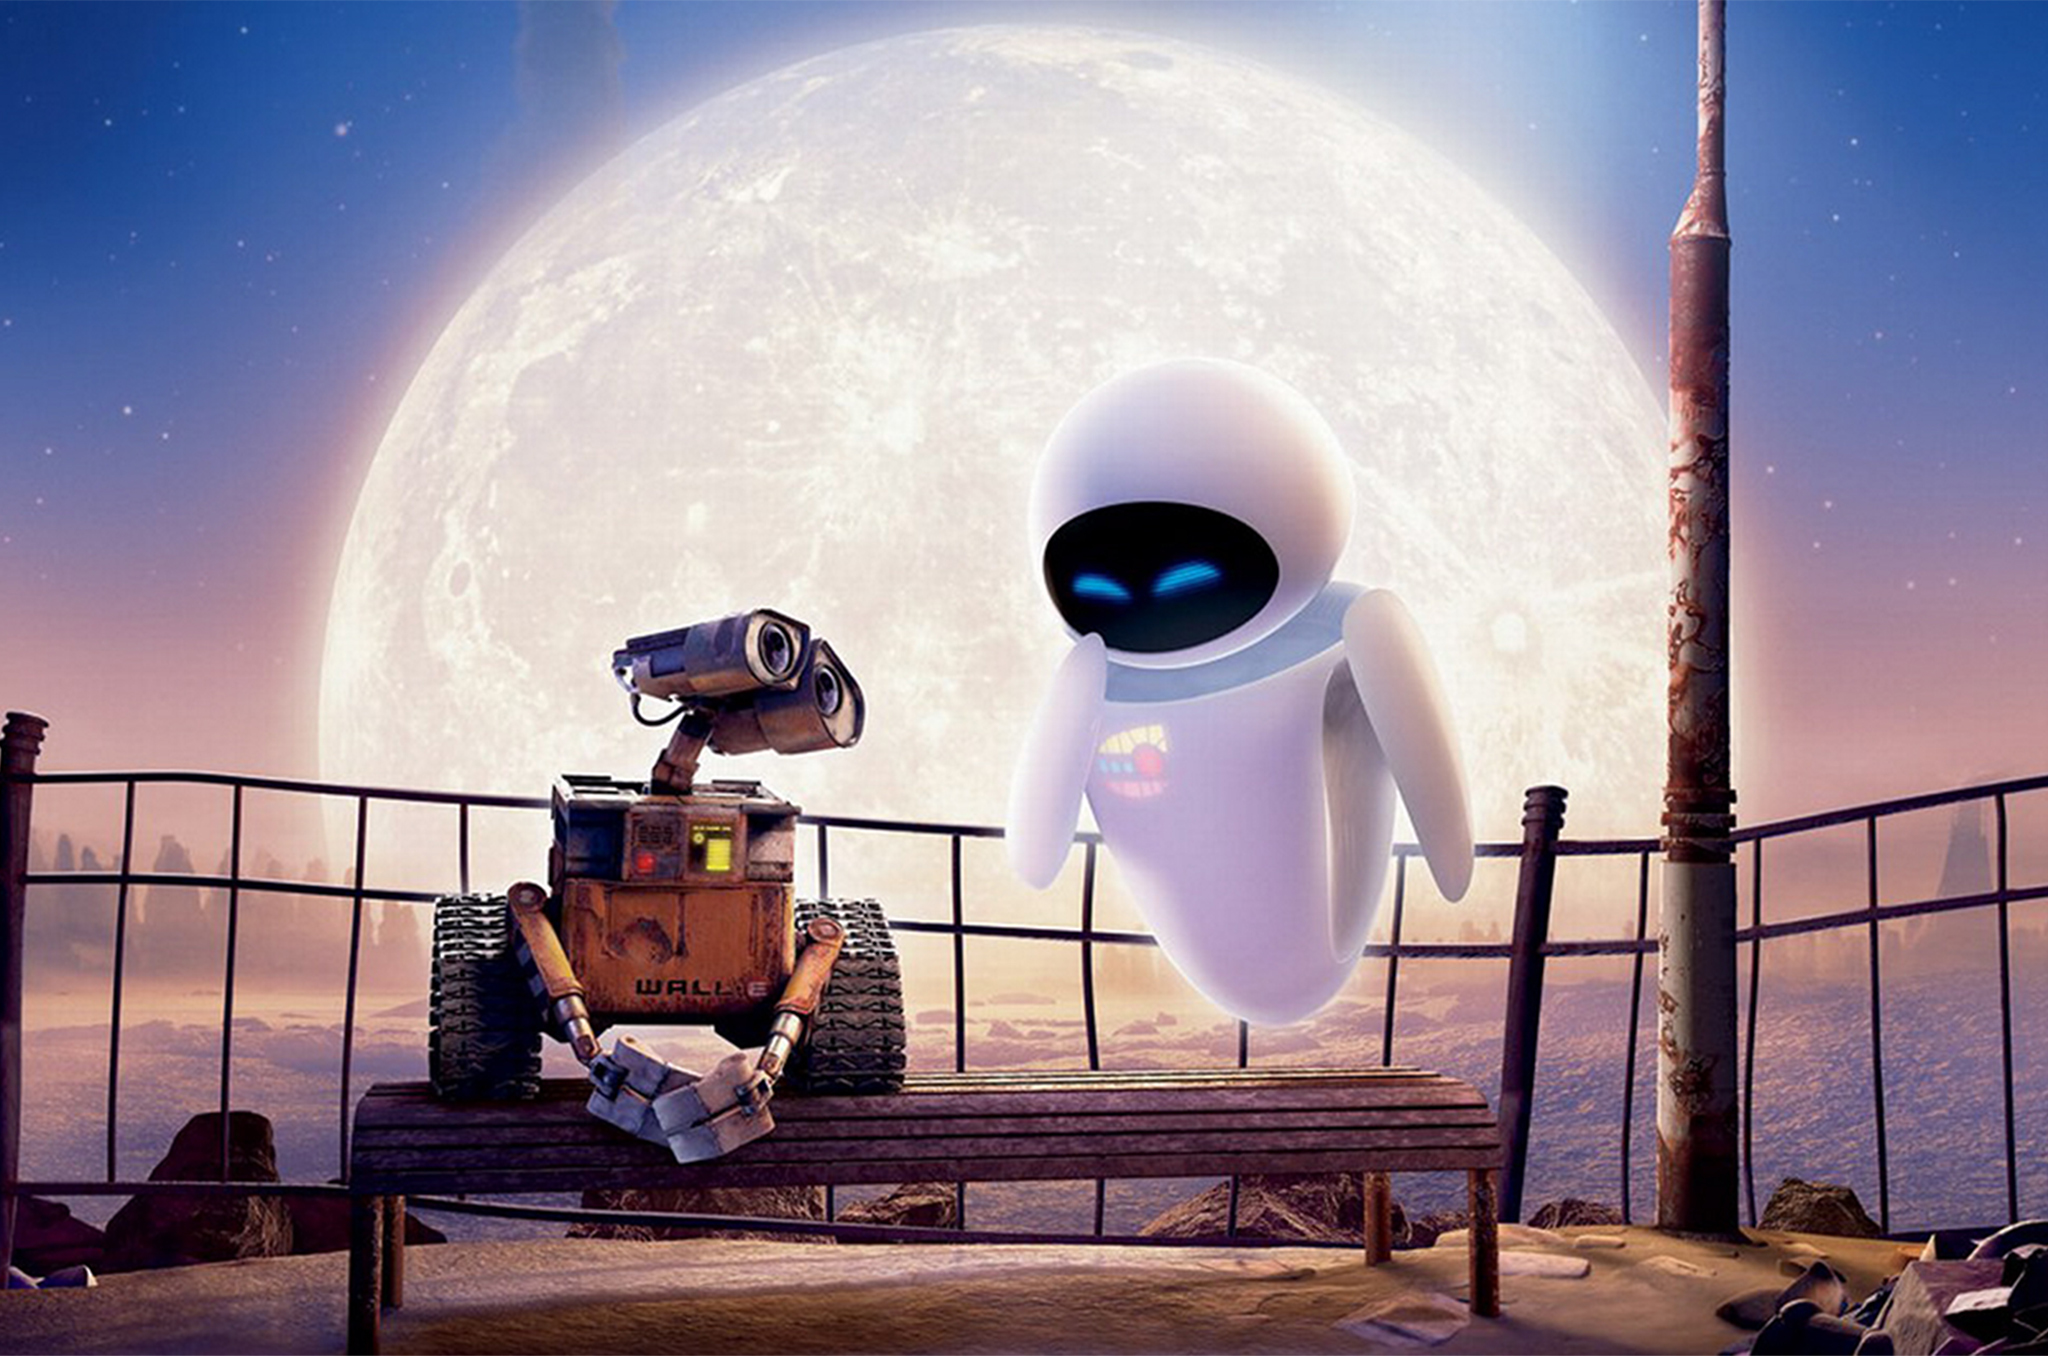 Outer Space: List of Sci Fi Movies about Space Travel